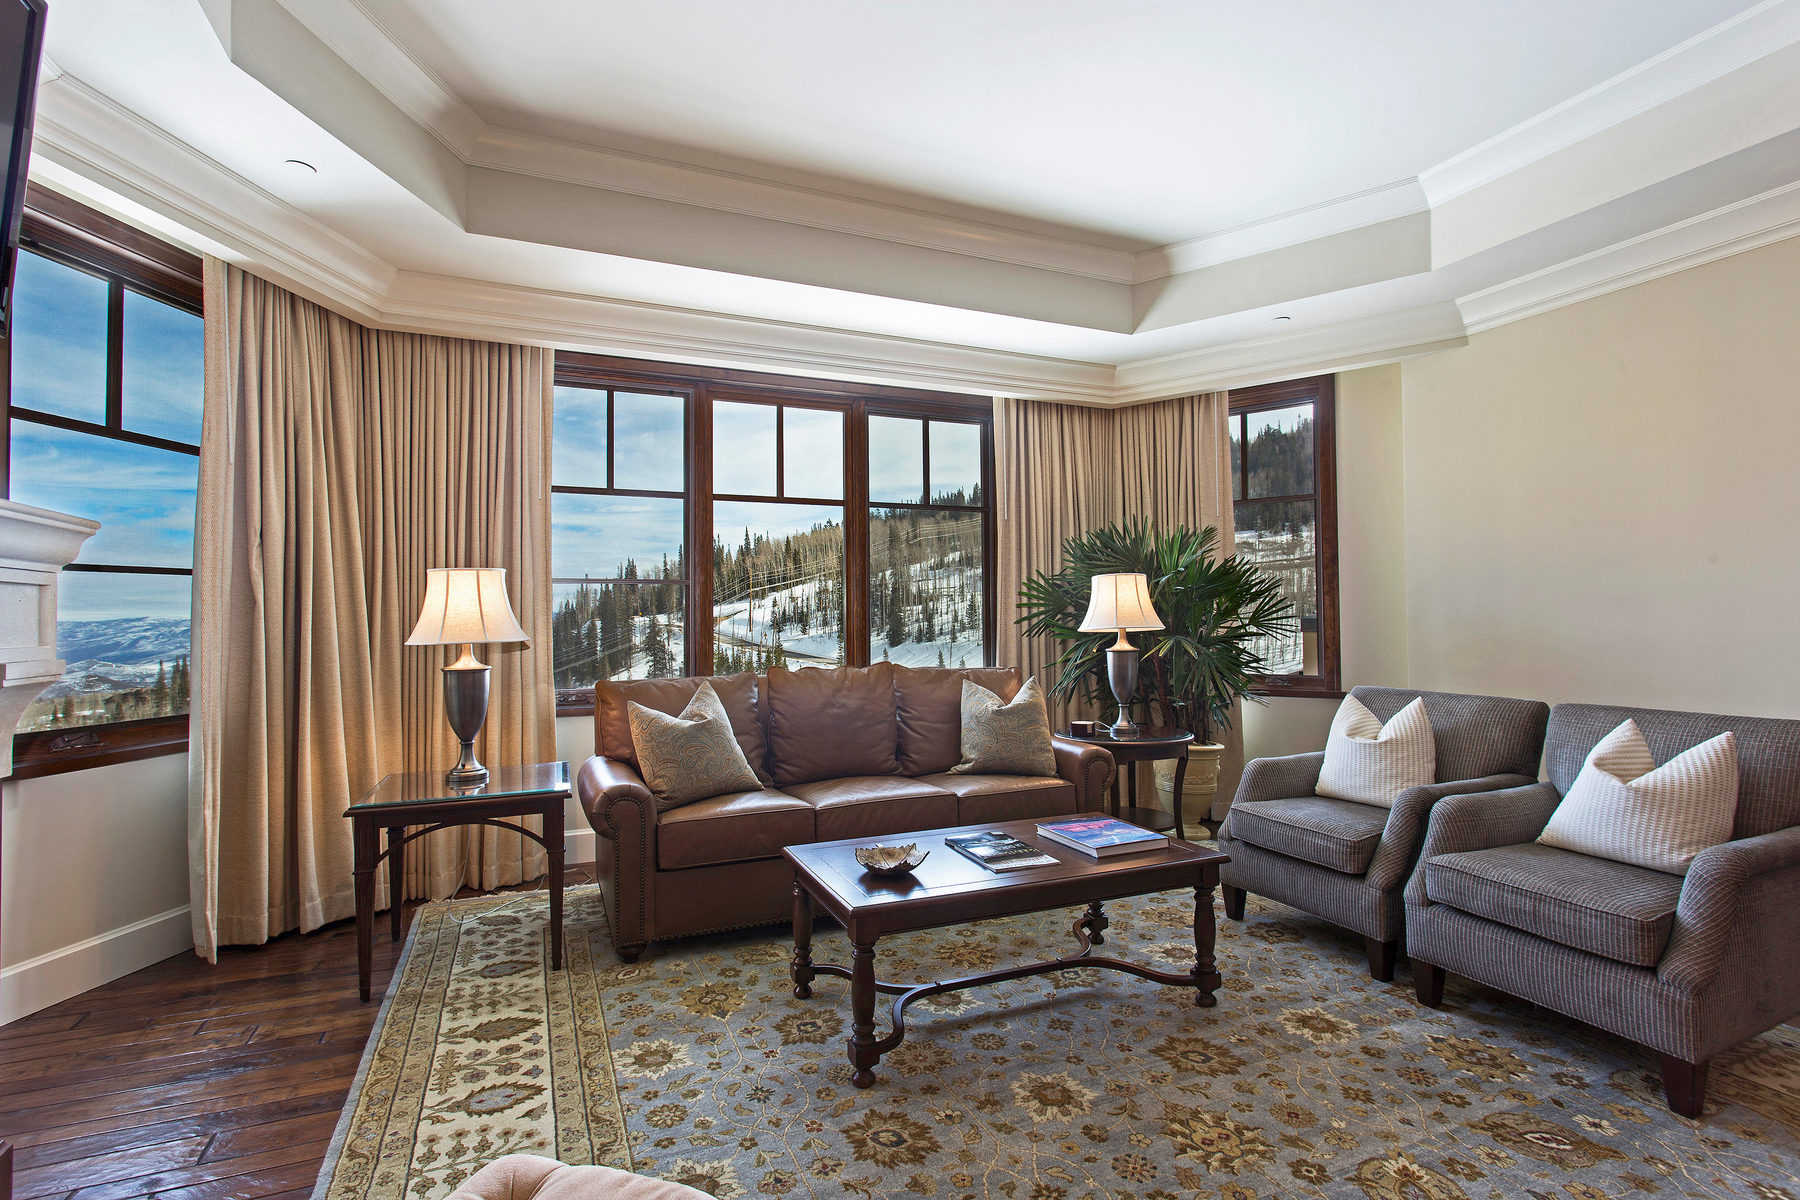 Condominium for Sale at Montage Residences at Deer Valley 9100 Marsac Ave #983 Park City, Utah, 84060 United States